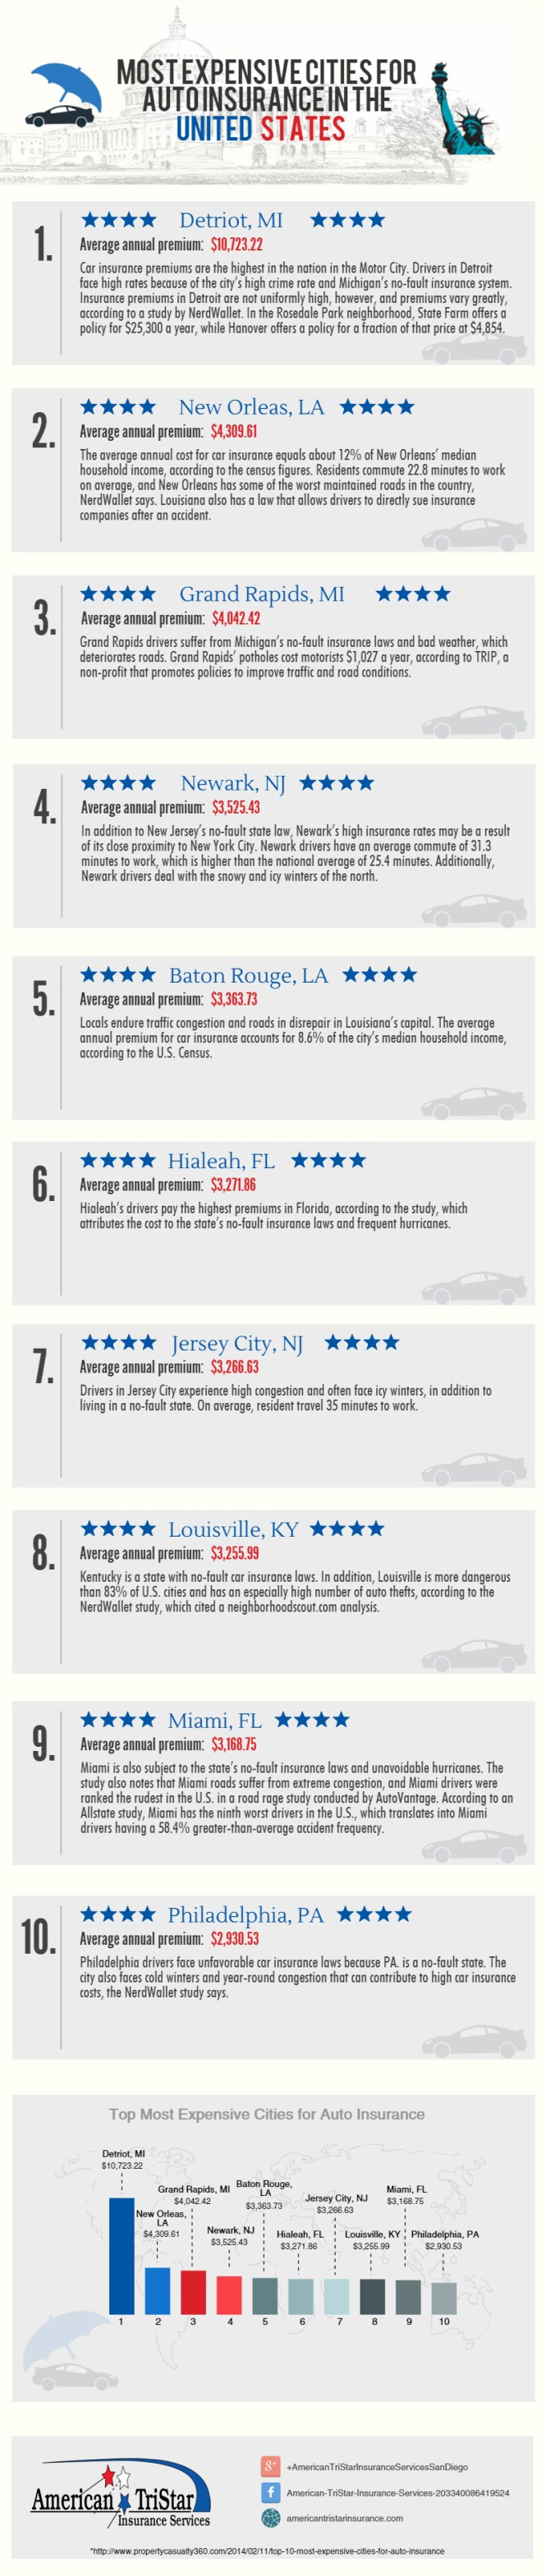 Top Most Expensive Cities for Auto Insurance in US